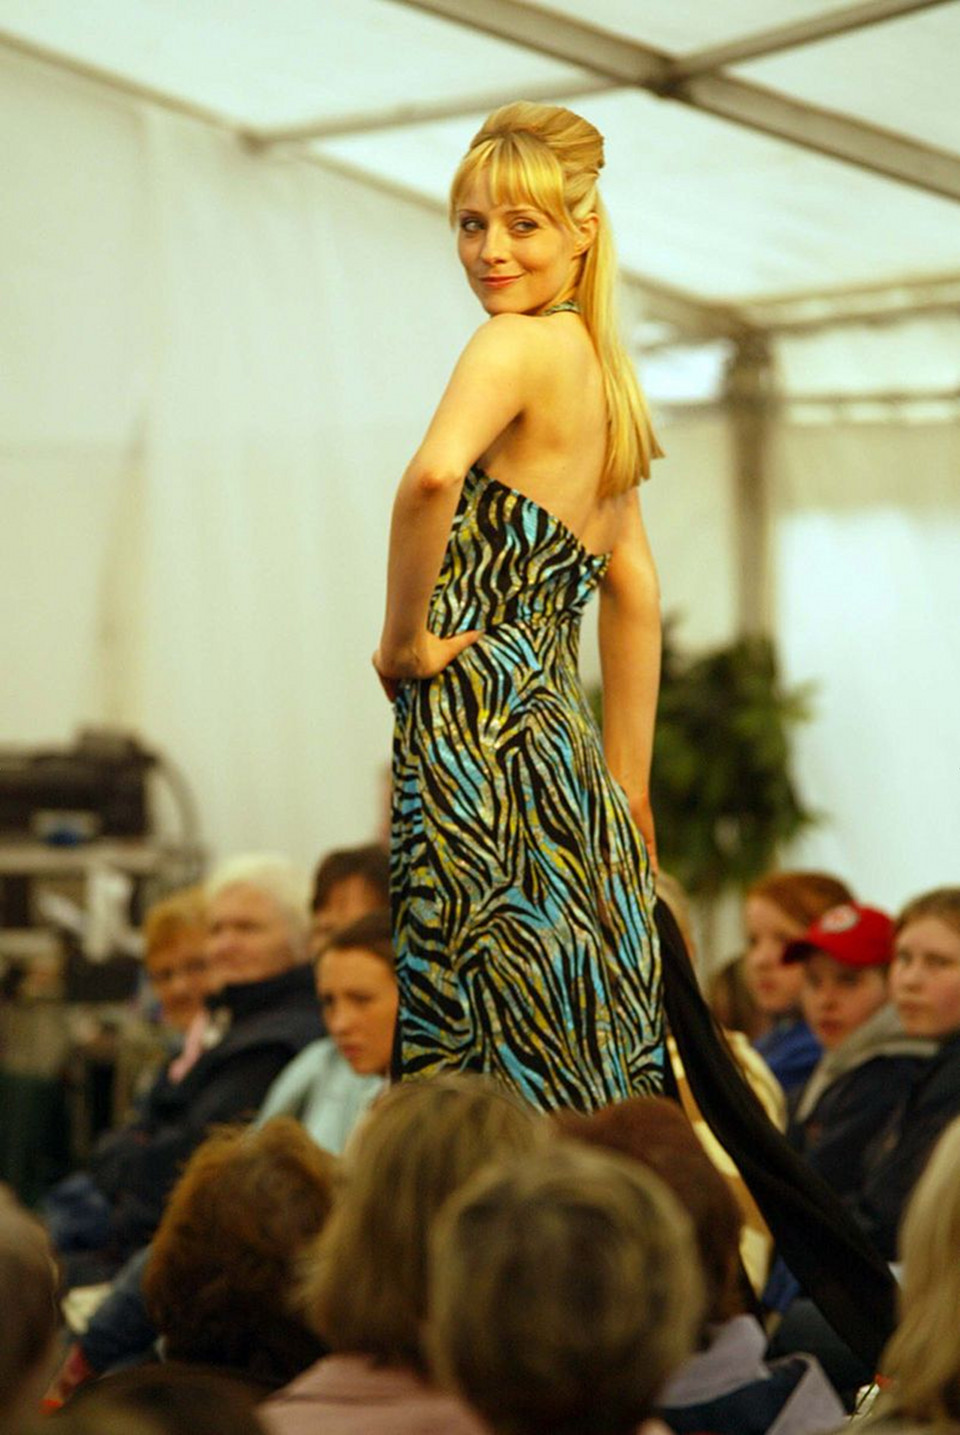 female model fashion show dress